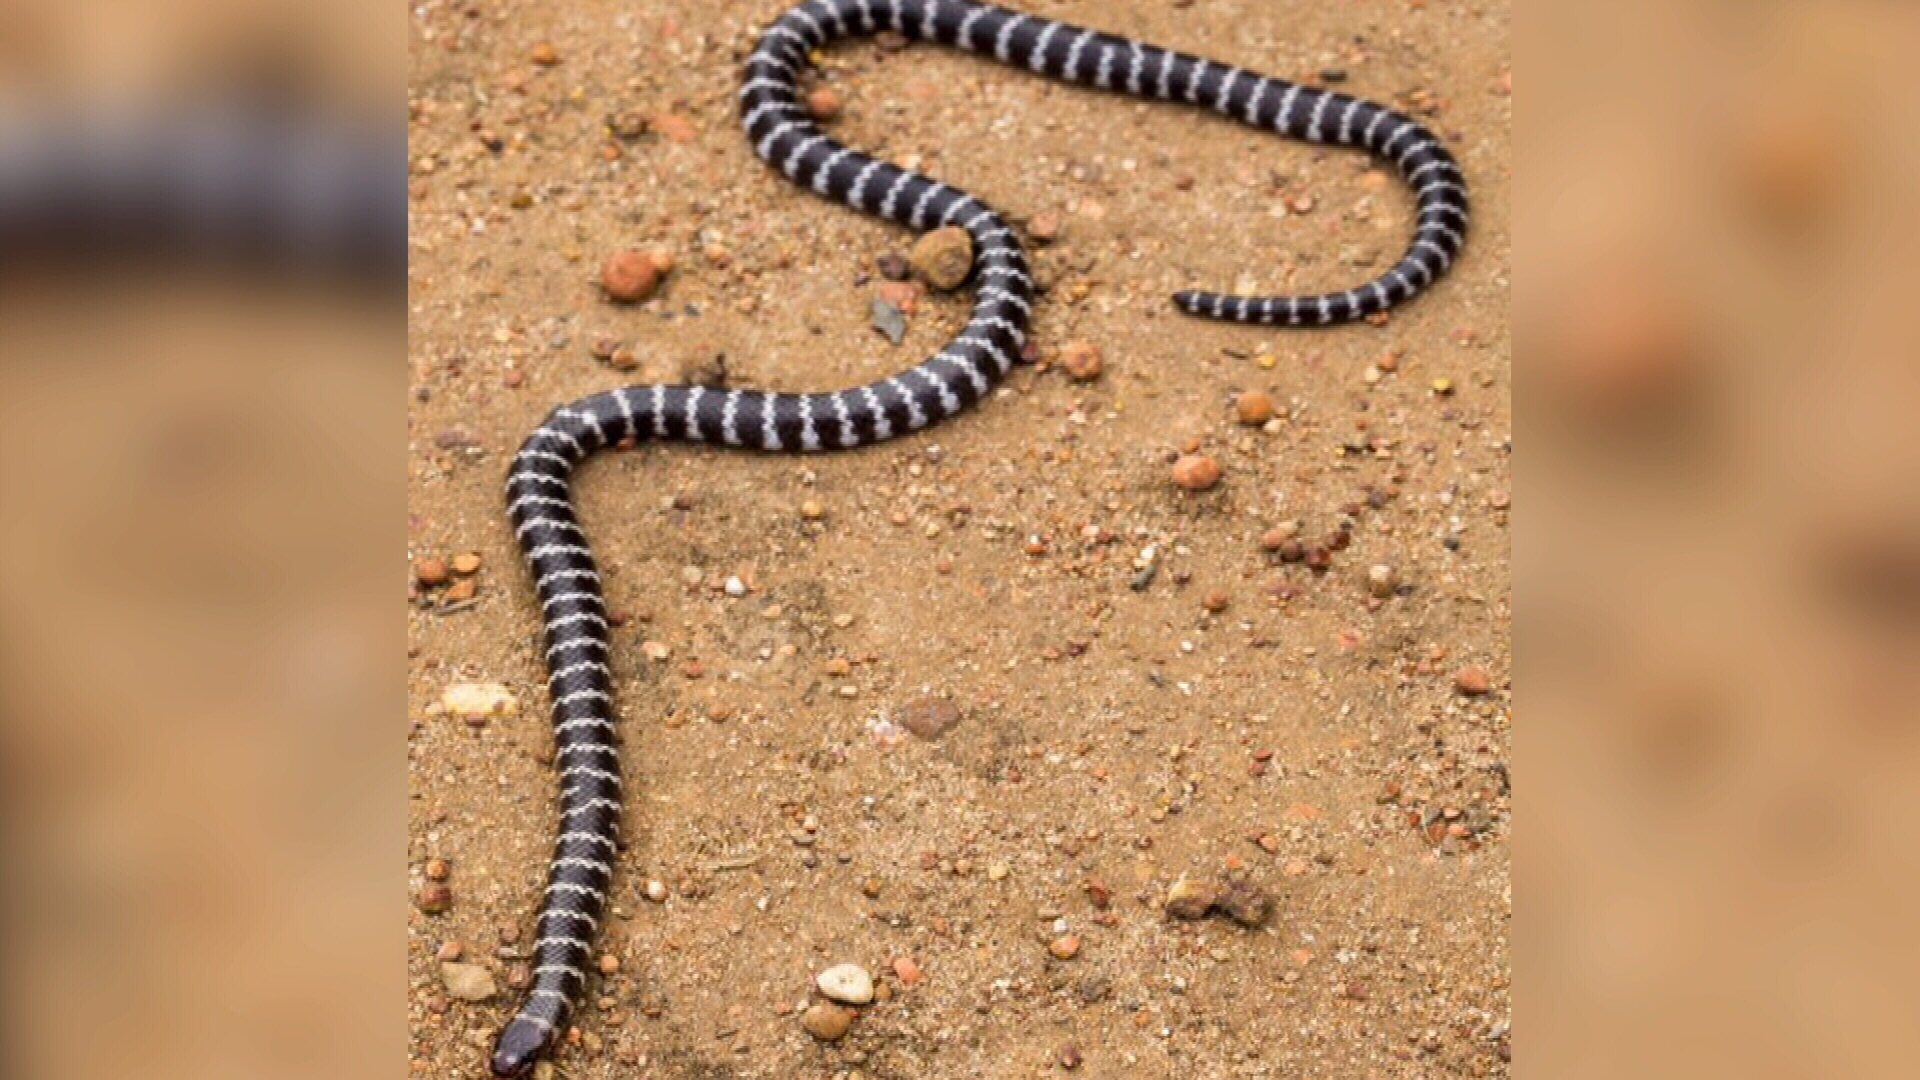 New species of venomous snake found